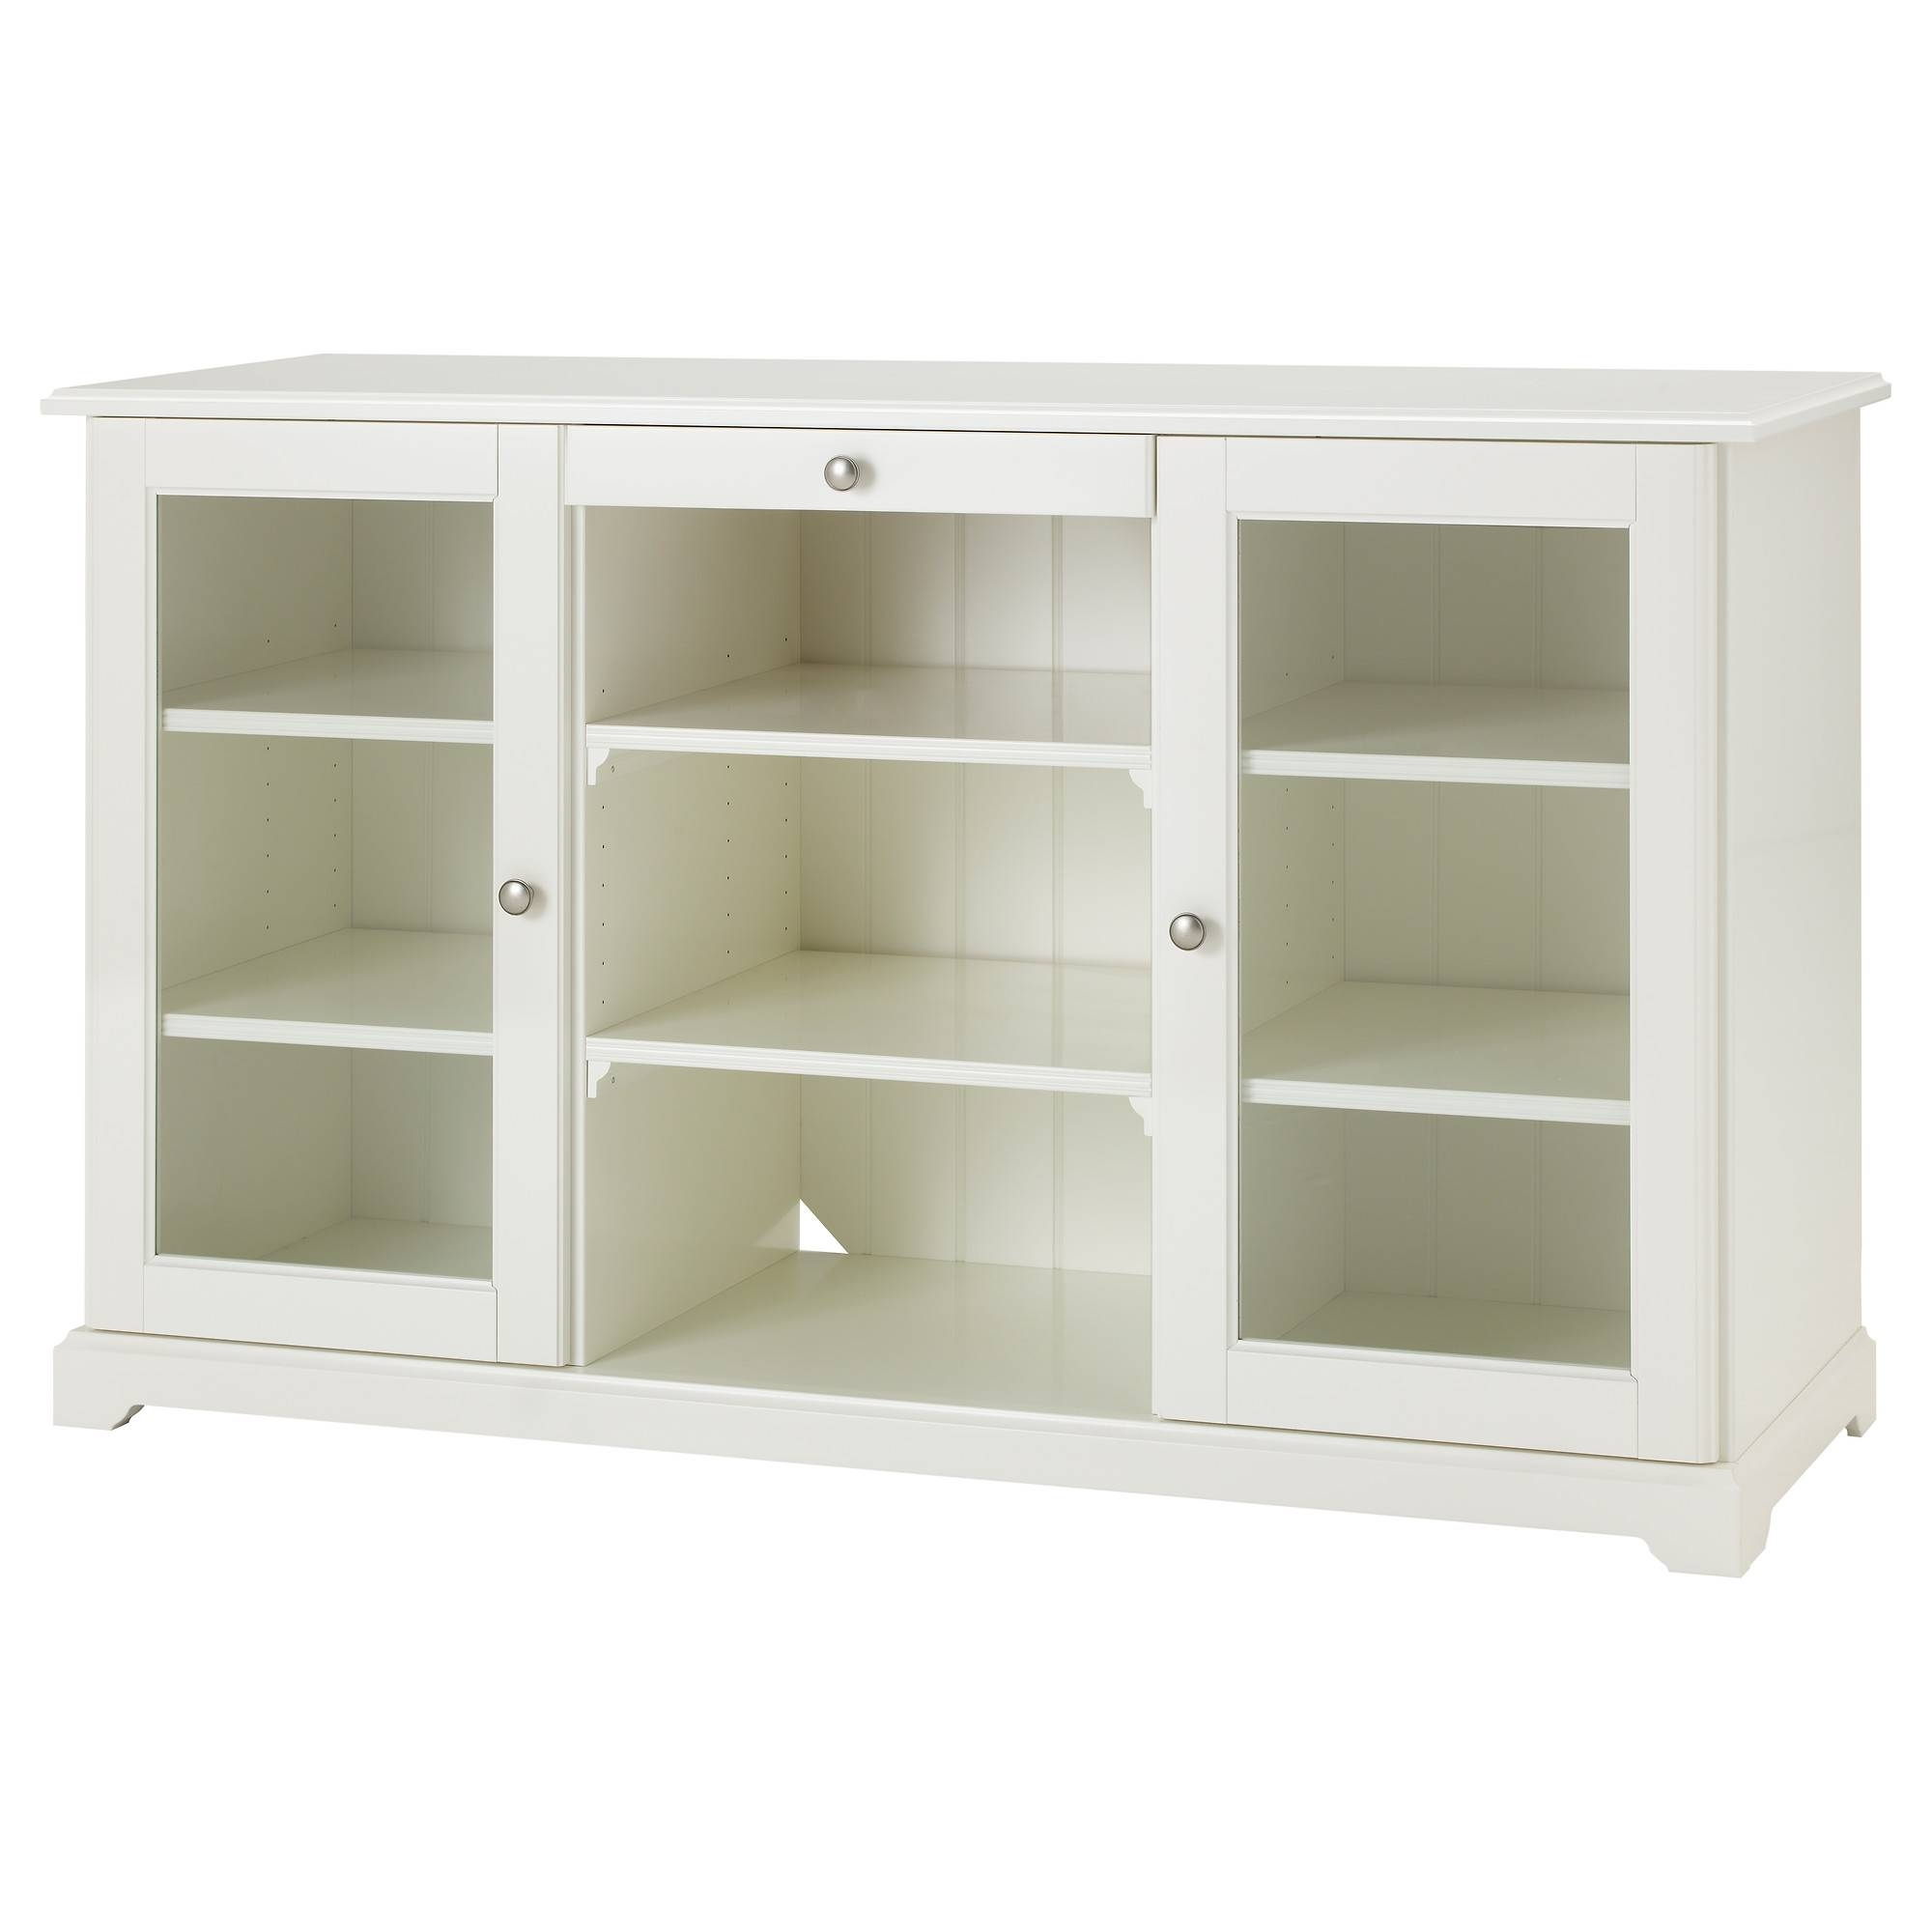 Liatorp Sideboard - White - Ikea regarding Canada Ikea Sideboards (Image 9 of 15)